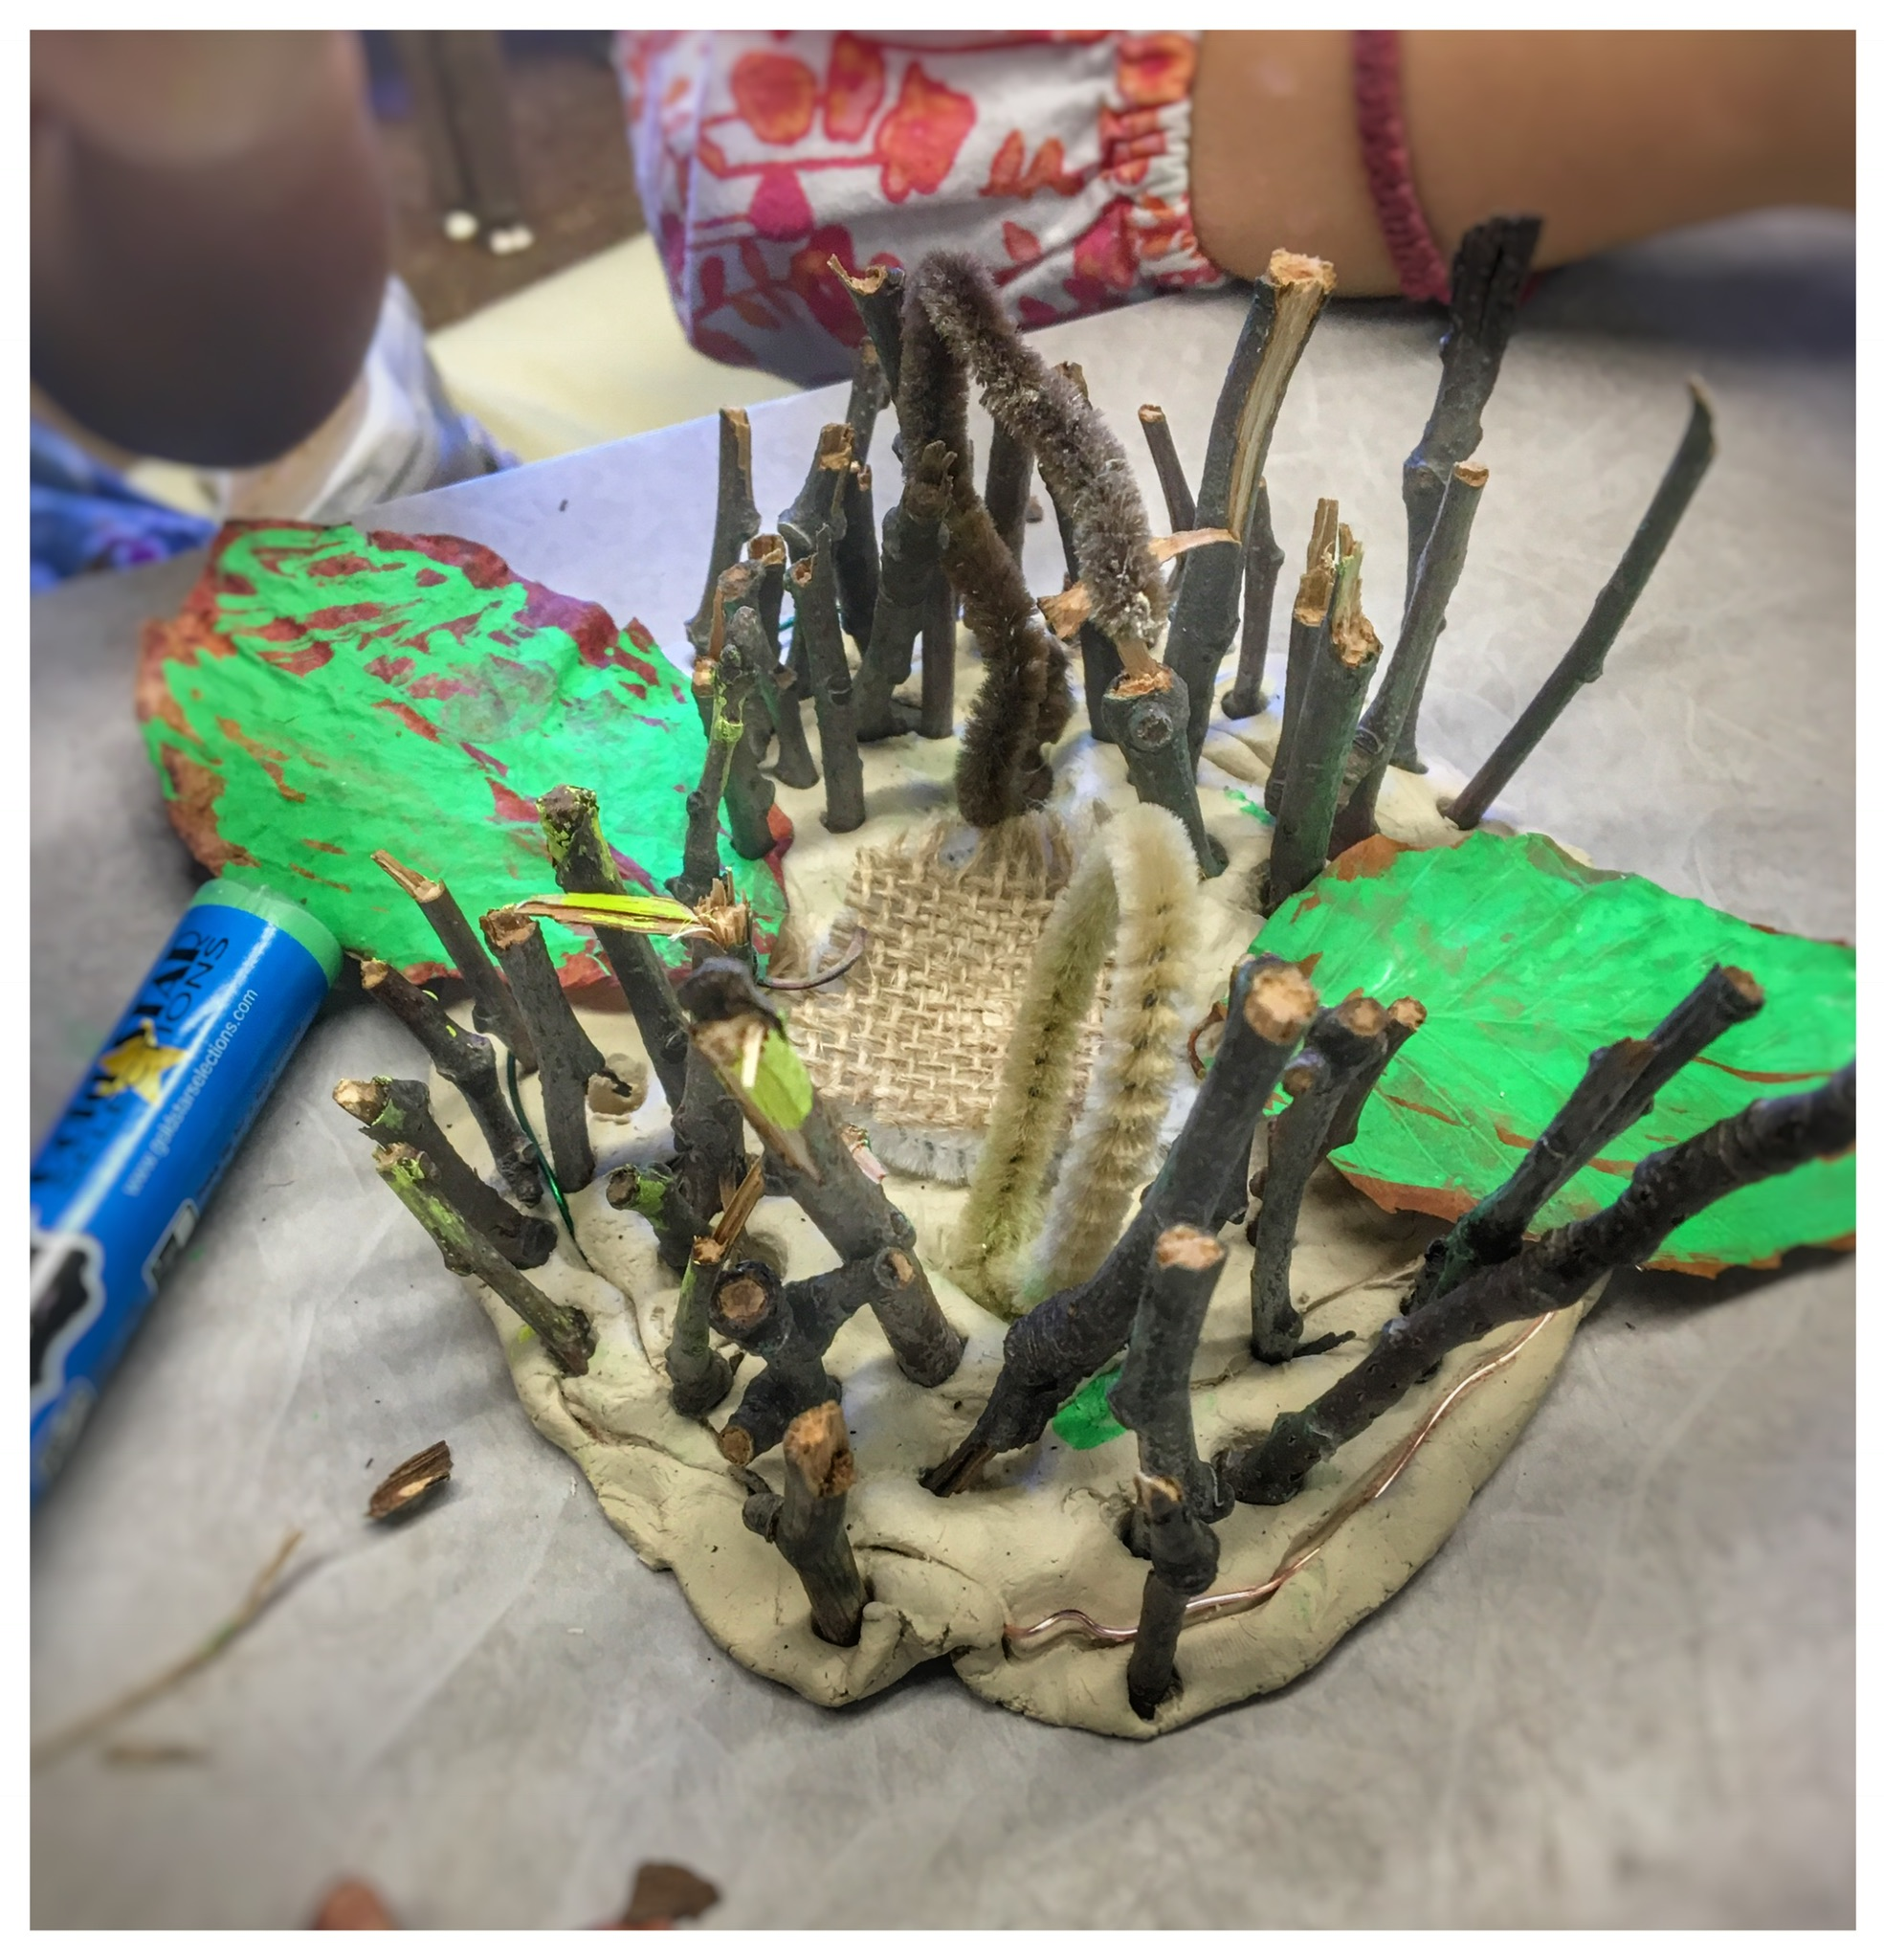 A beautiful result of an exploration with clay, wire and natural materials.